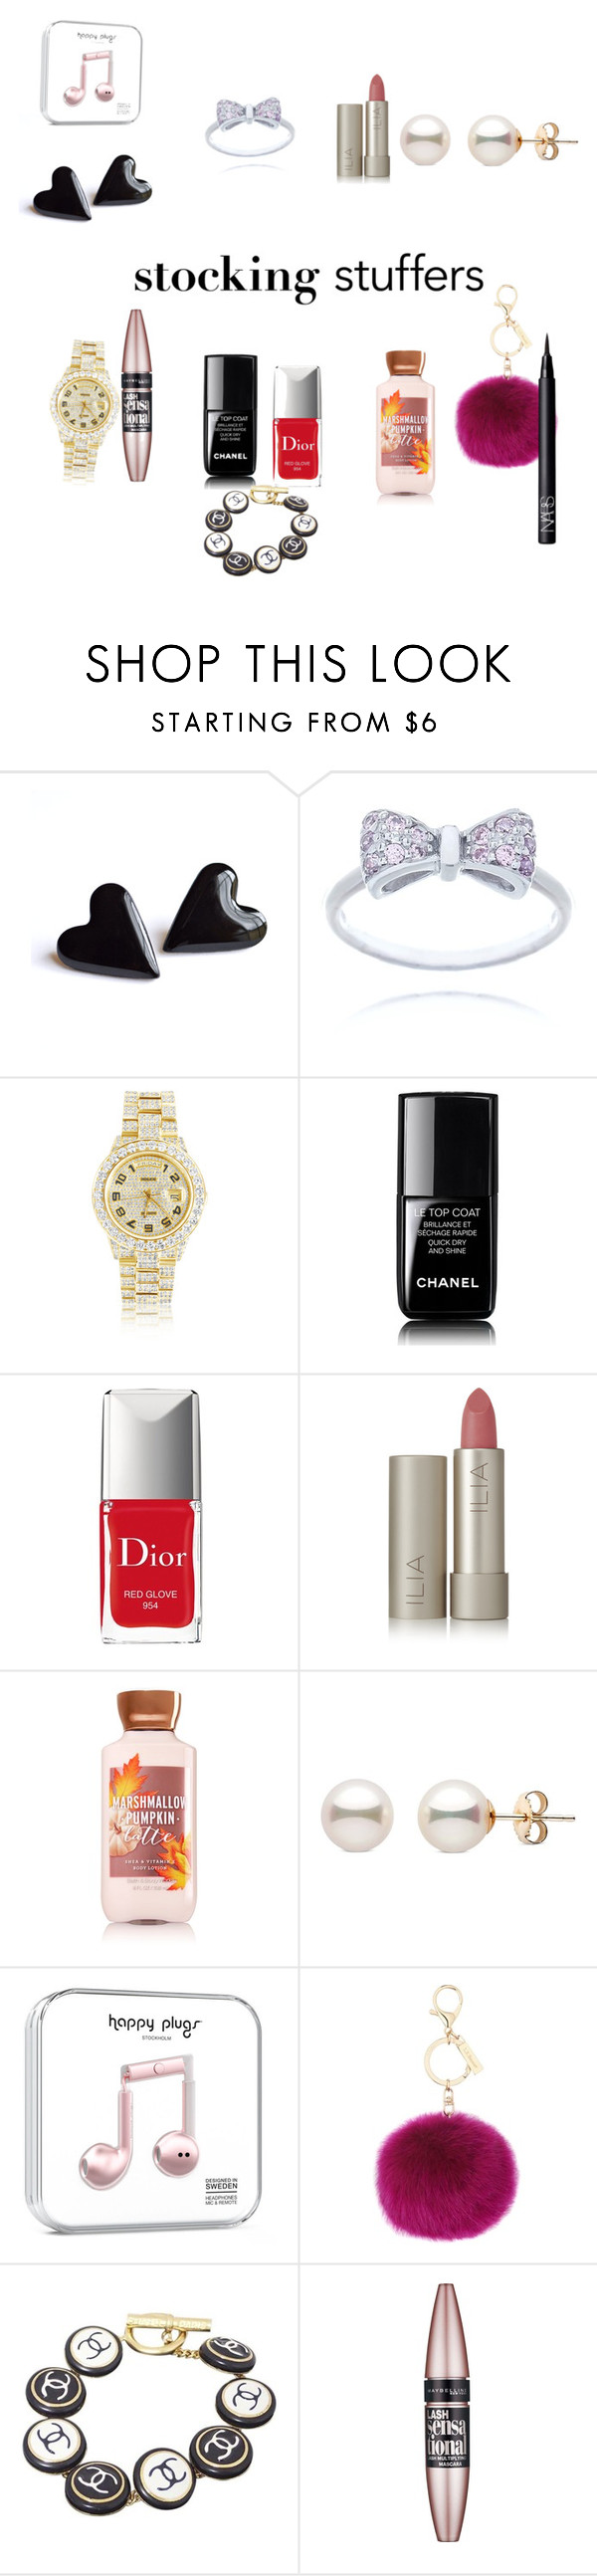 """Cute stocking stuffers"" by lexia-1 ❤ liked on Polyvore featuring Rolex, Christian Dior, Ilia, L.K.Bennett, Chanel, Maybelline and NARS Cosmetics"